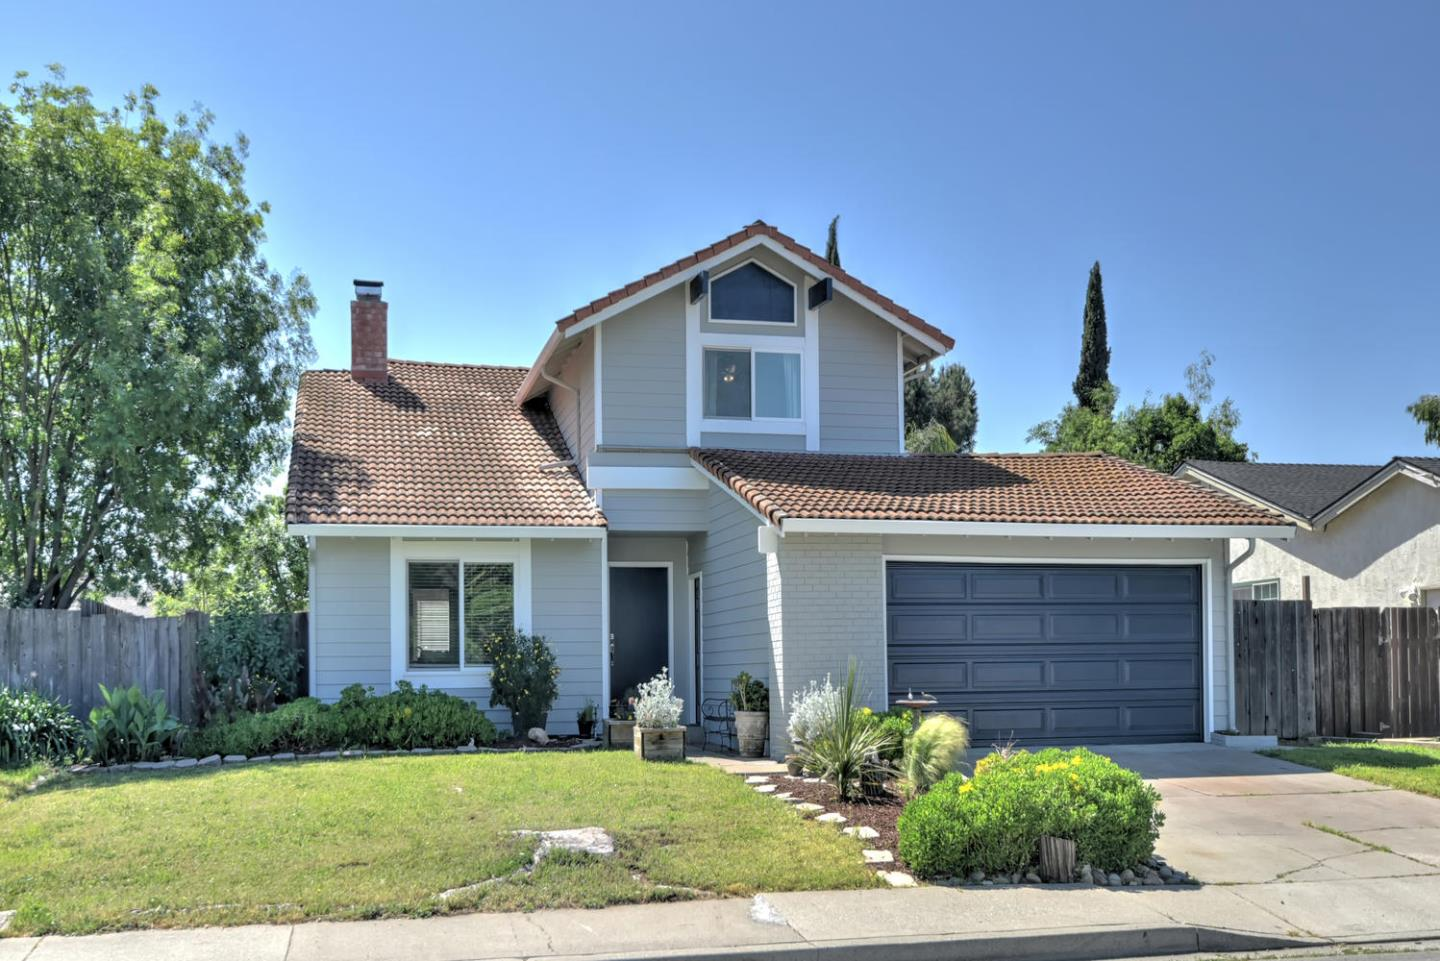 430 Calle Cabezal Morgan Hill Ca 95037 Mls 81650569